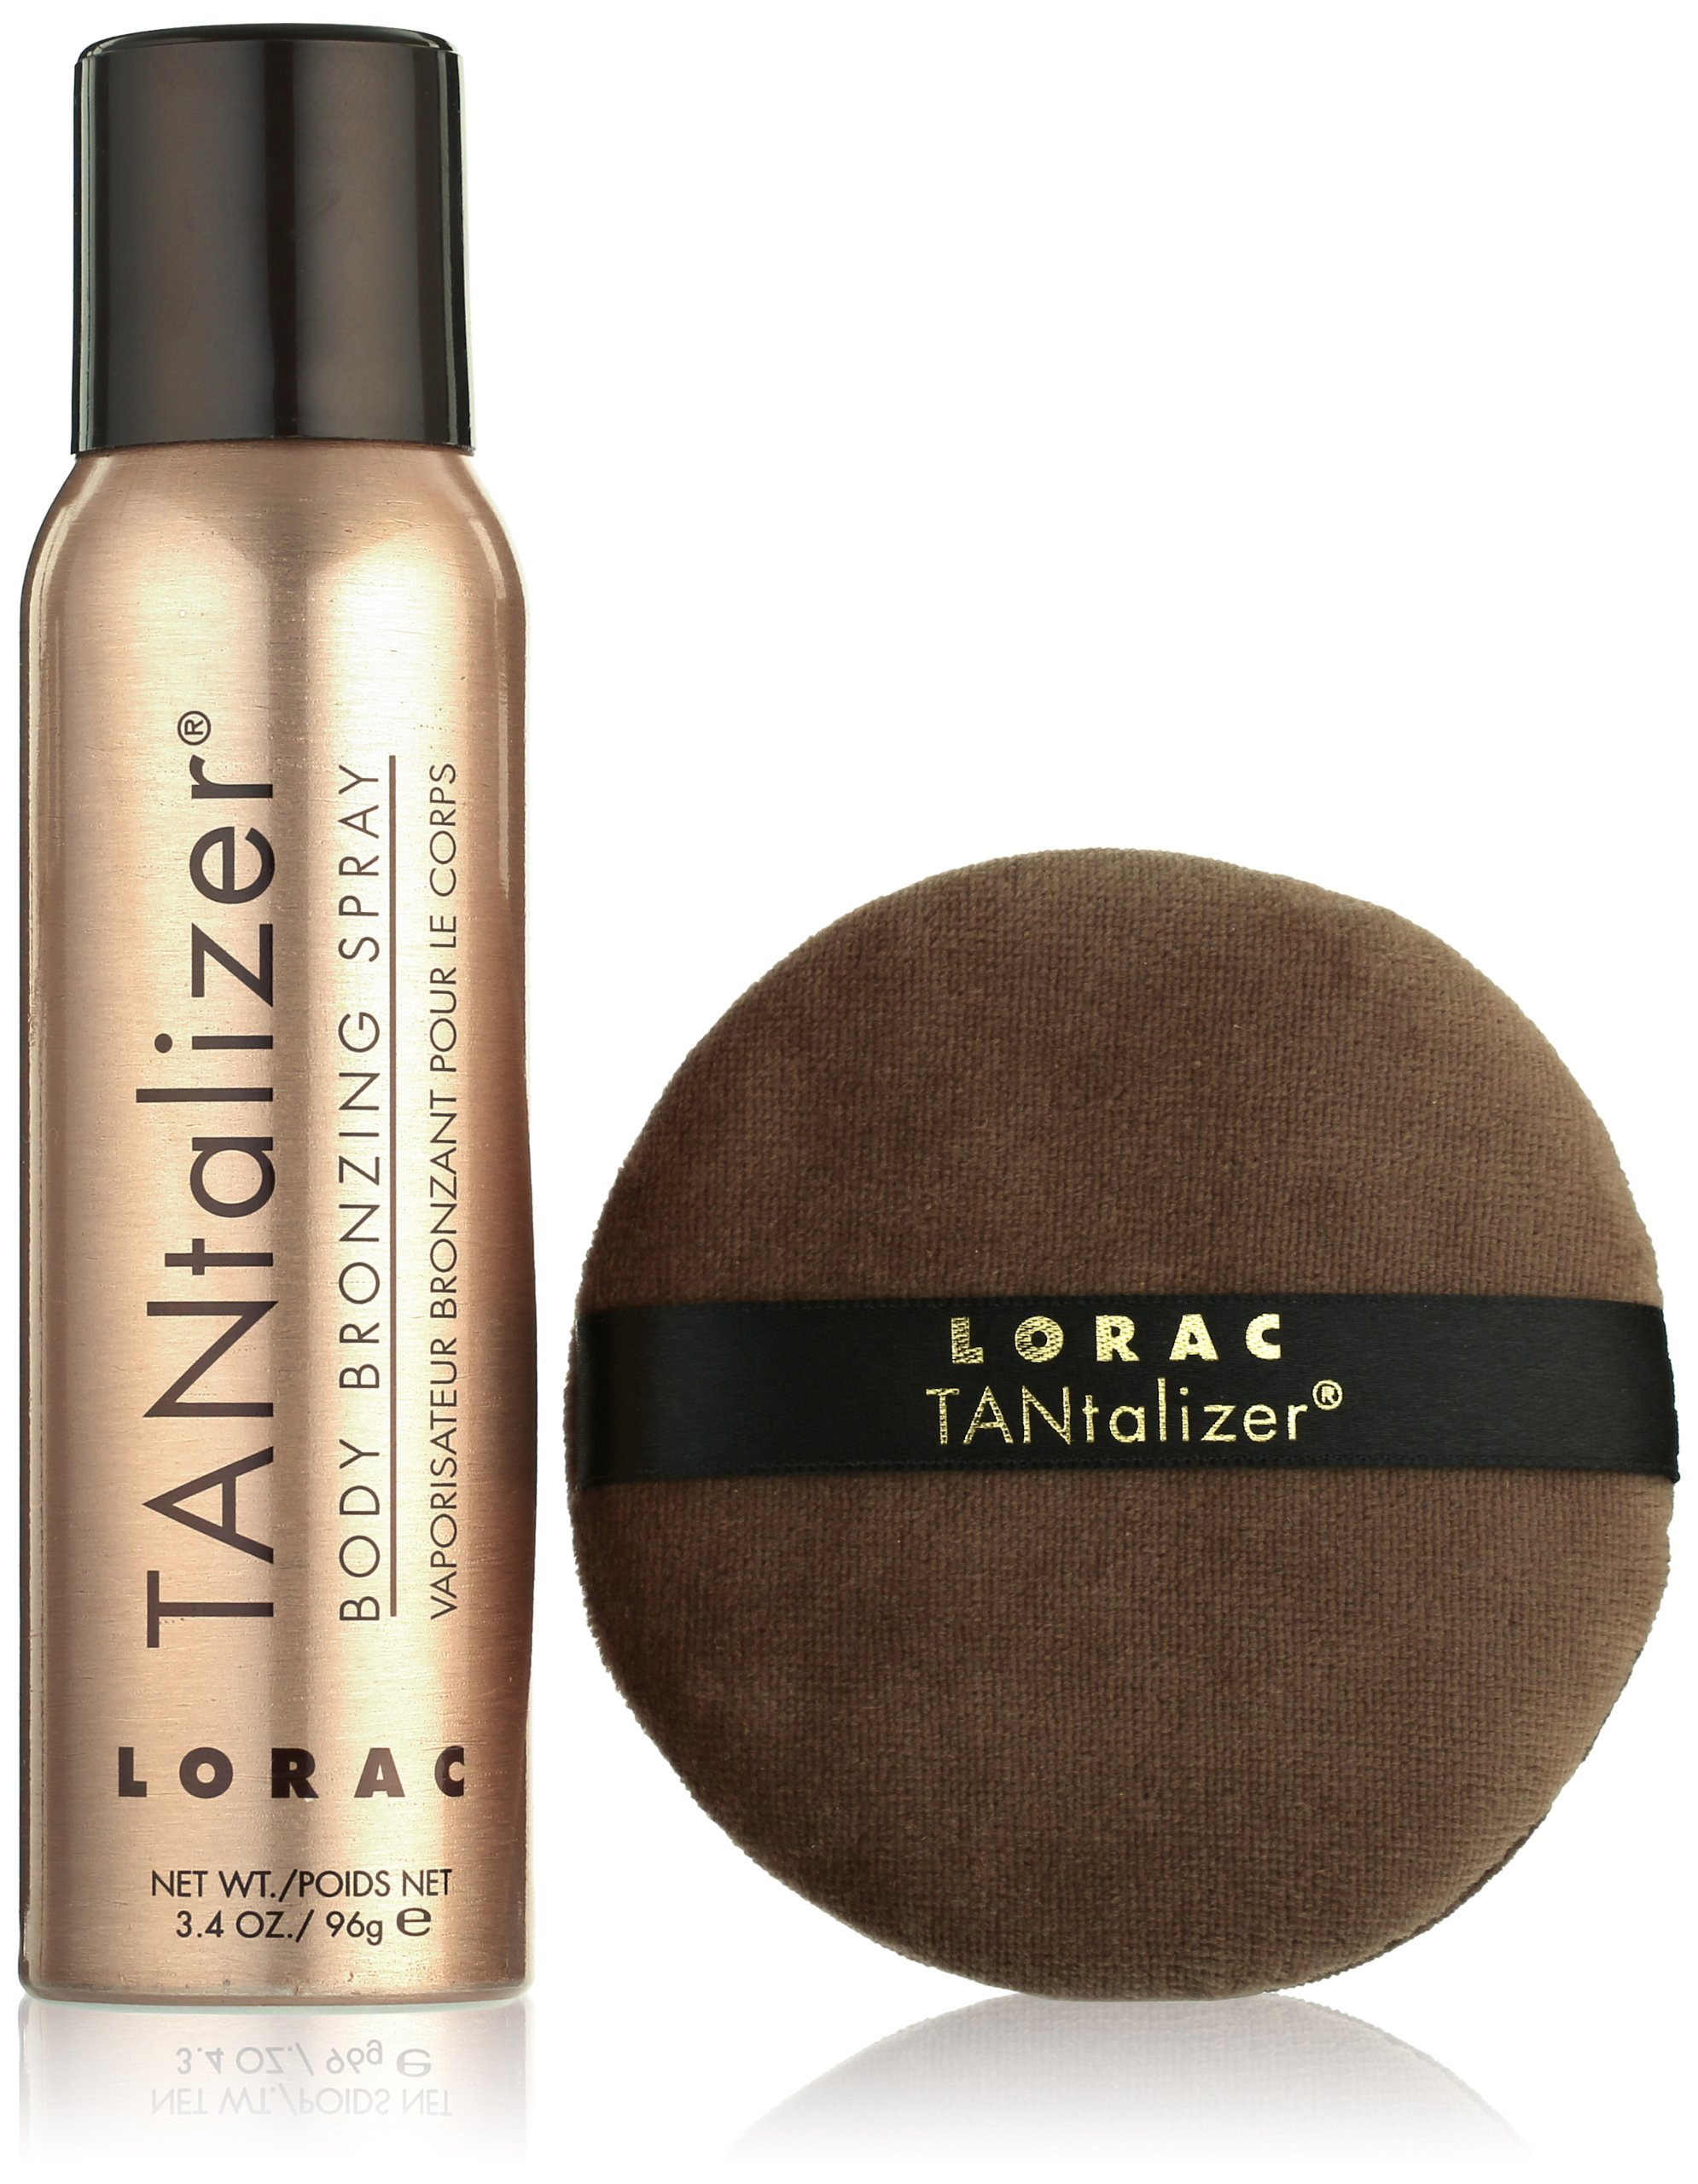 LORAC TANtalizer Body Bronzing Spray, 3.4 oz. by LORAC